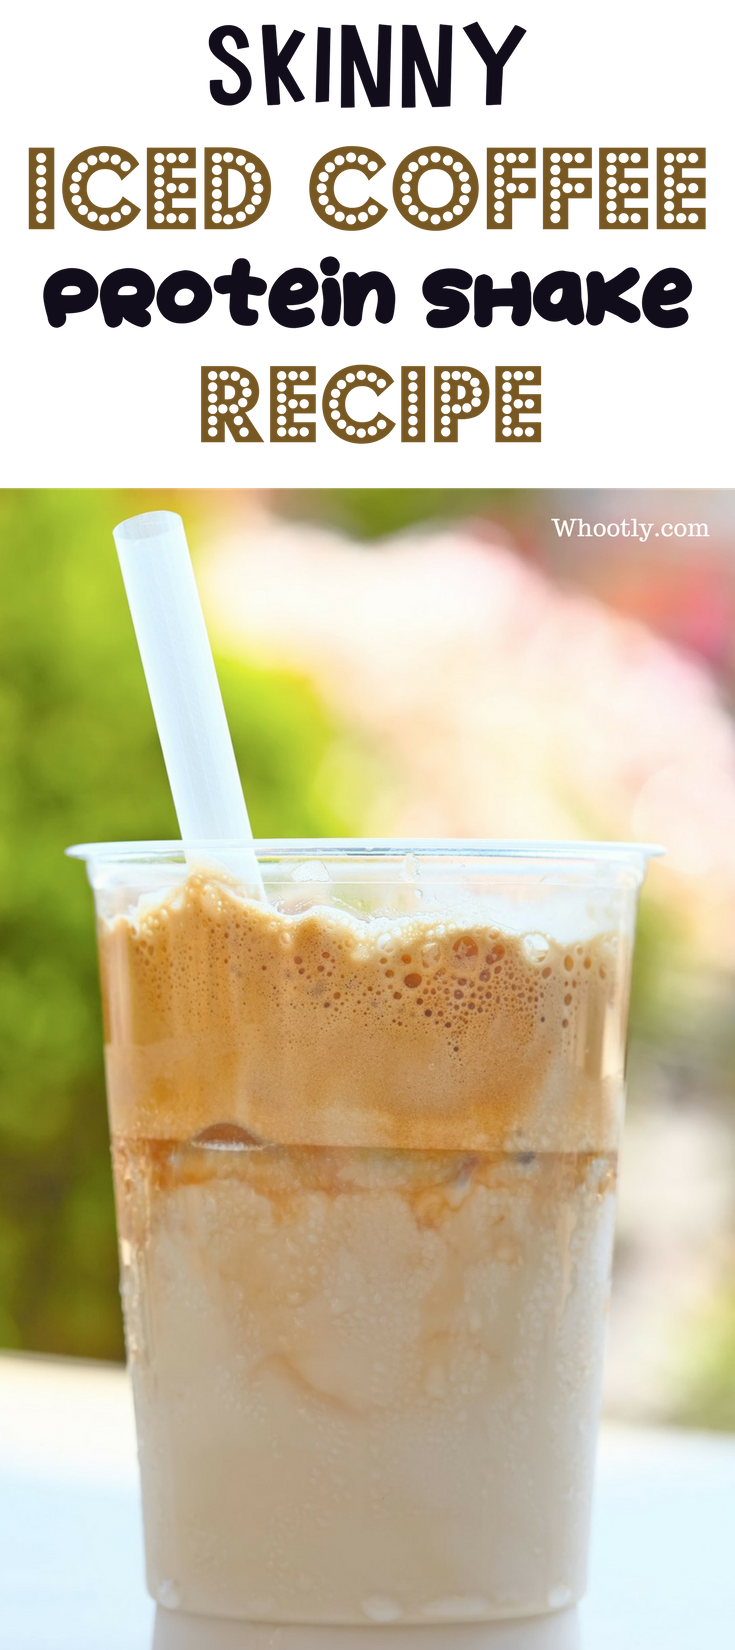 Iced Coffee Protein Shake Recipe A Low Calorie Low Carb High Protein And Filling Break Protein Shake Recipes Shake Recipes Iced Coffee Protein Shake Recipe